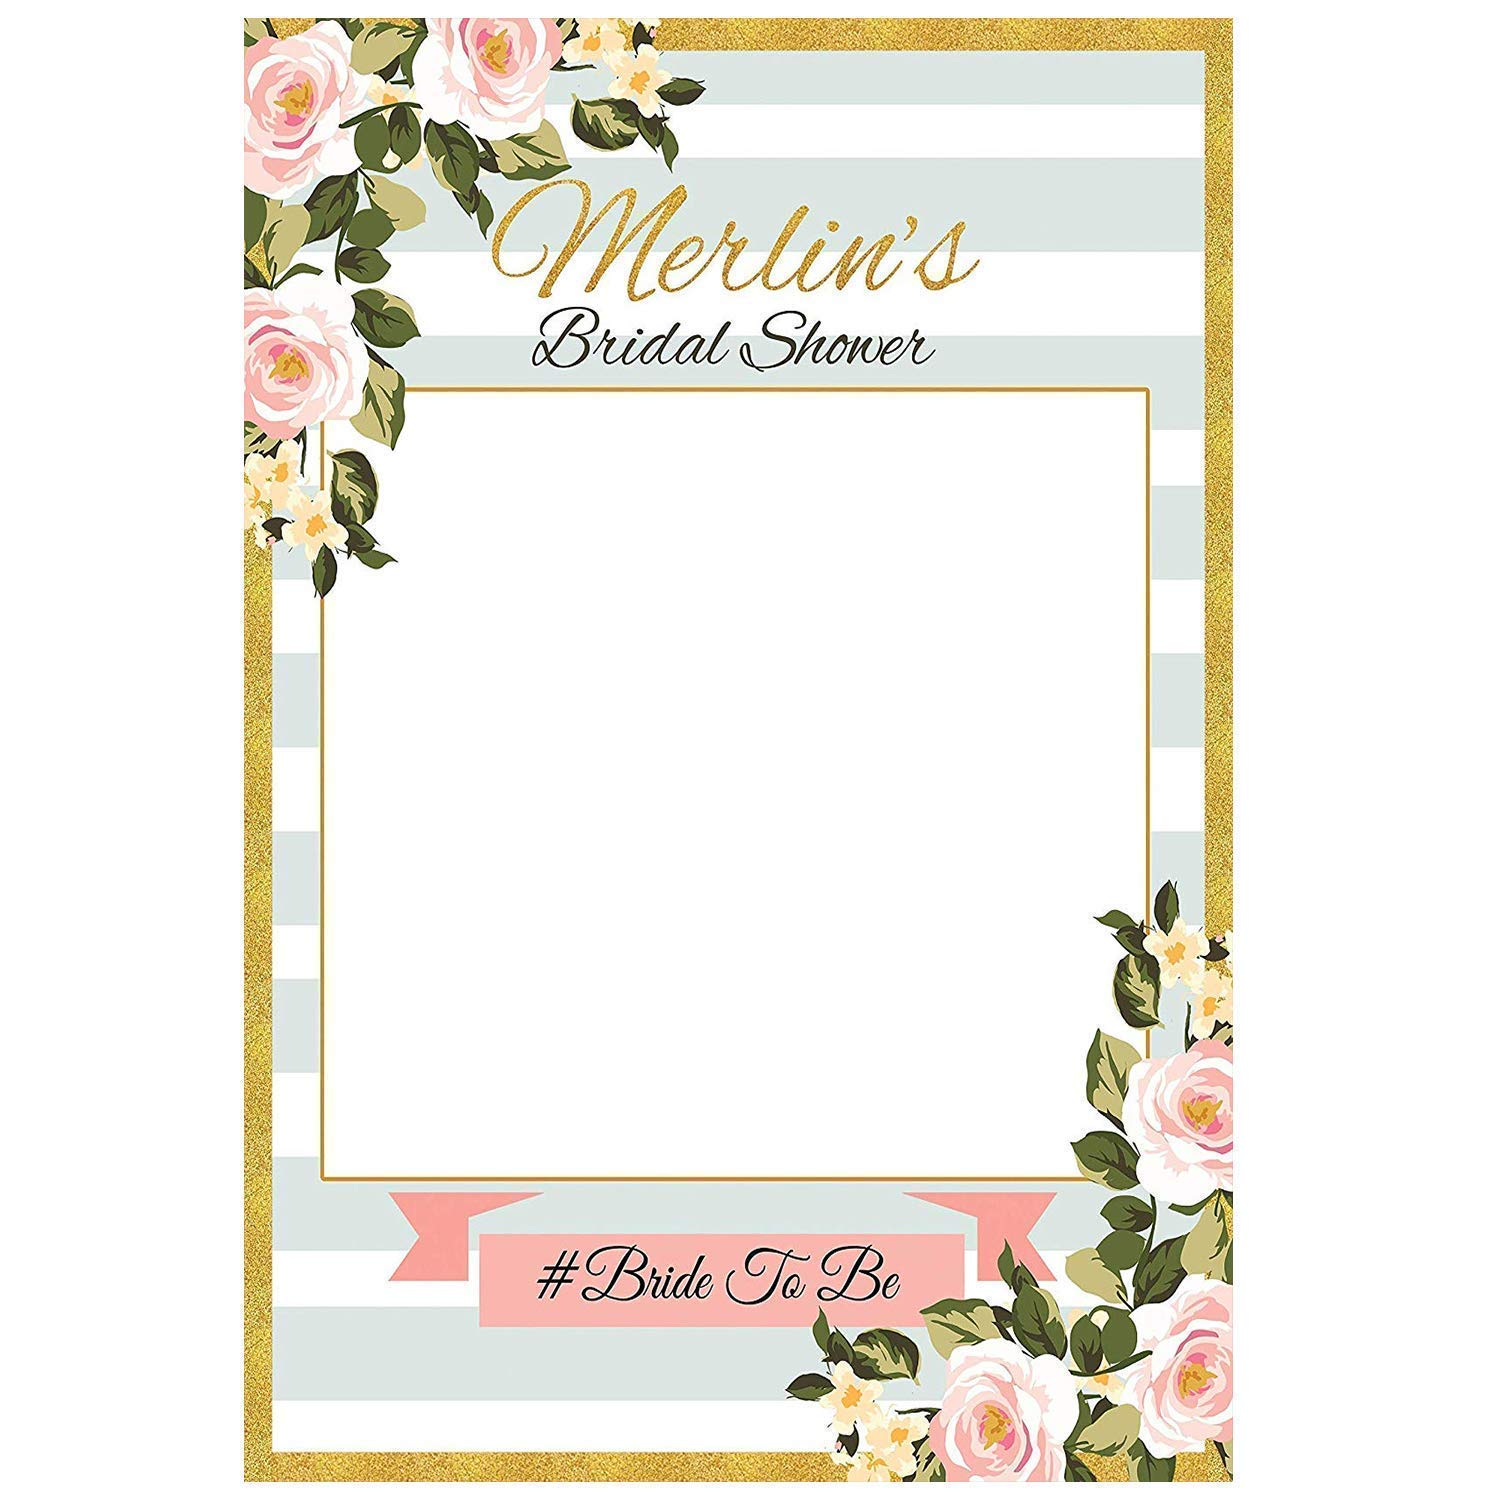 PhPr16 Bird Decor Bridal Shower Photo Prop Navy and Gold Photo Booth Frame Peony Floral Garden Party Decor DIGITAL ITEM